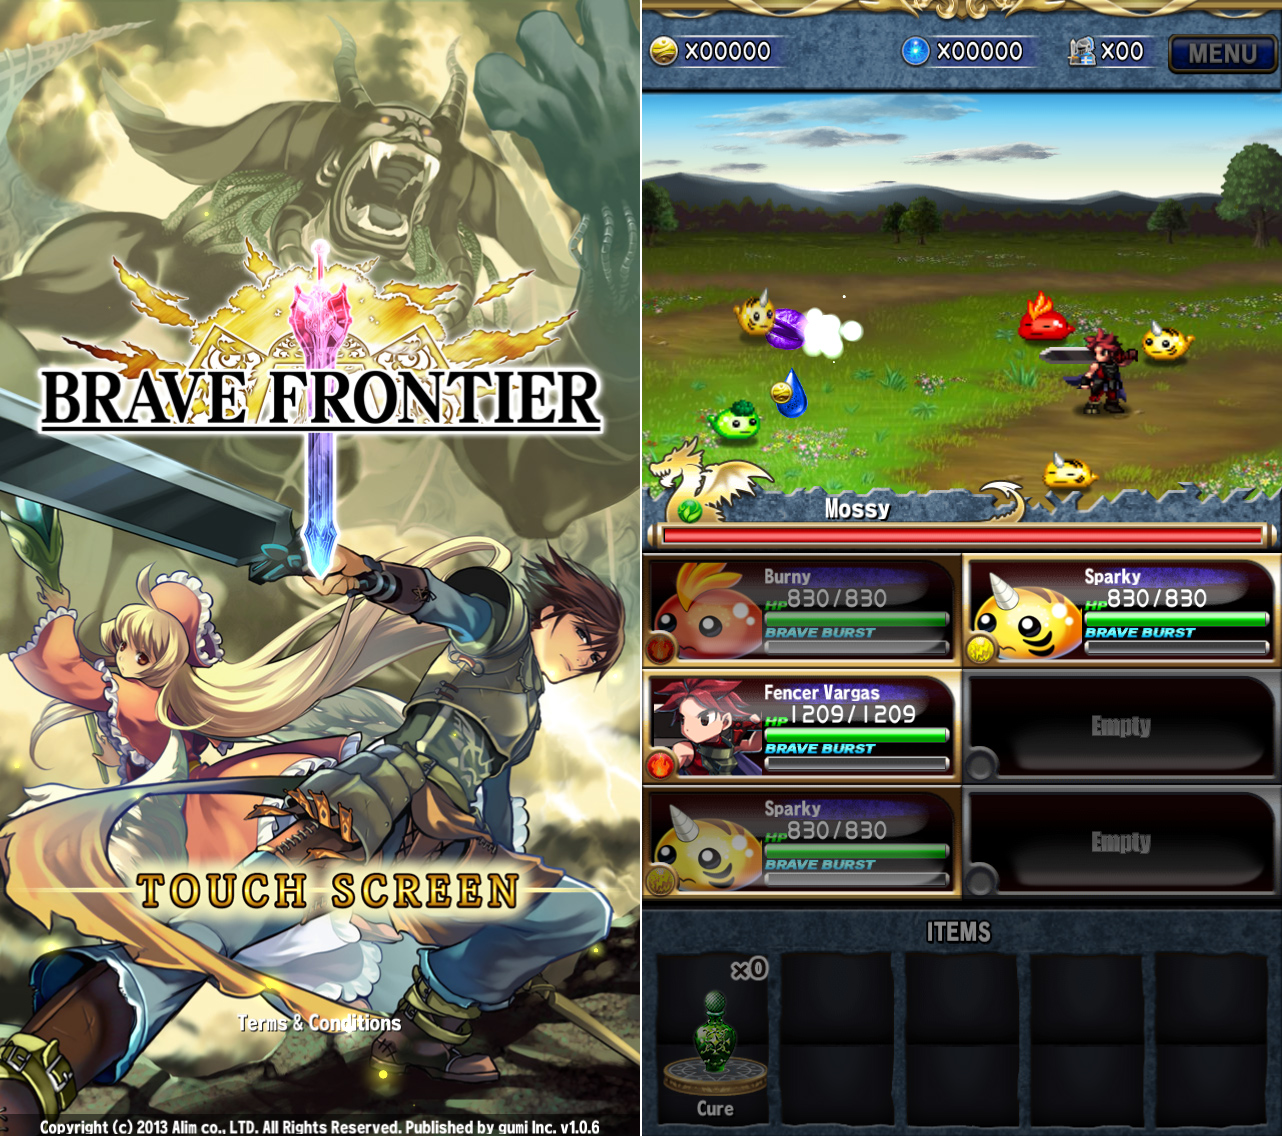 Venture Forth Into The Brave Frontier For A Chance To Win A $10 iTunes Gift Card